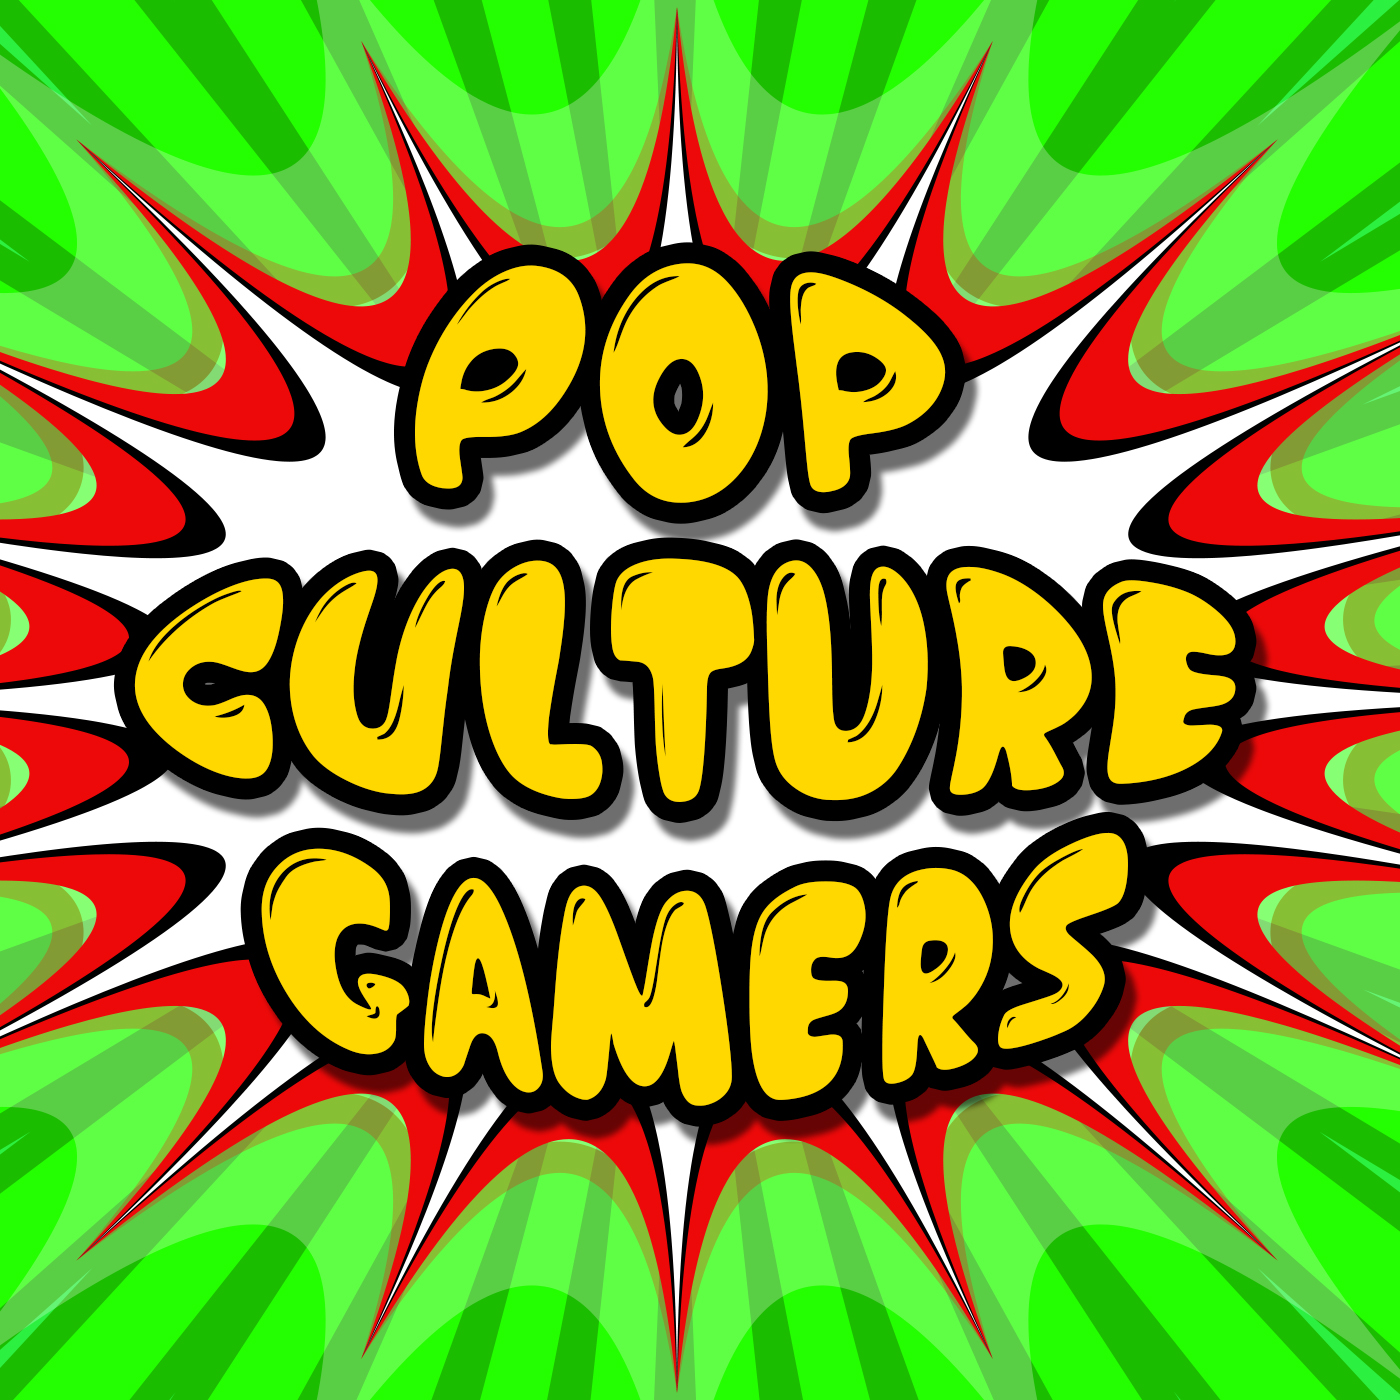 Pop Culture Gamers logo podbean.jpg